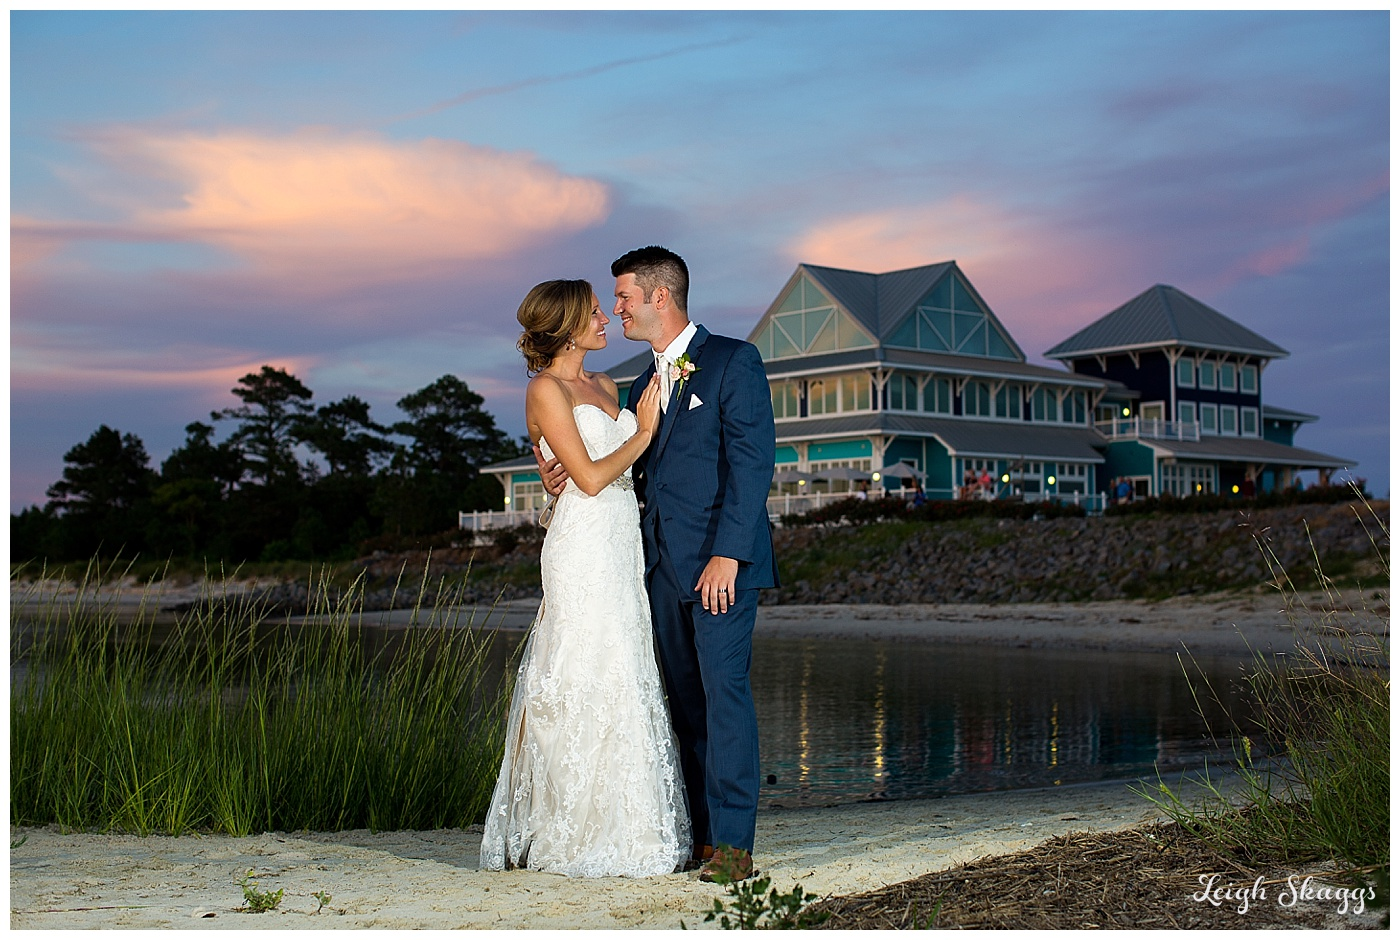 Jenna and Bob are Married!!!  An Eastern Shore wedding at the Oyster Farm at Kings Creek!